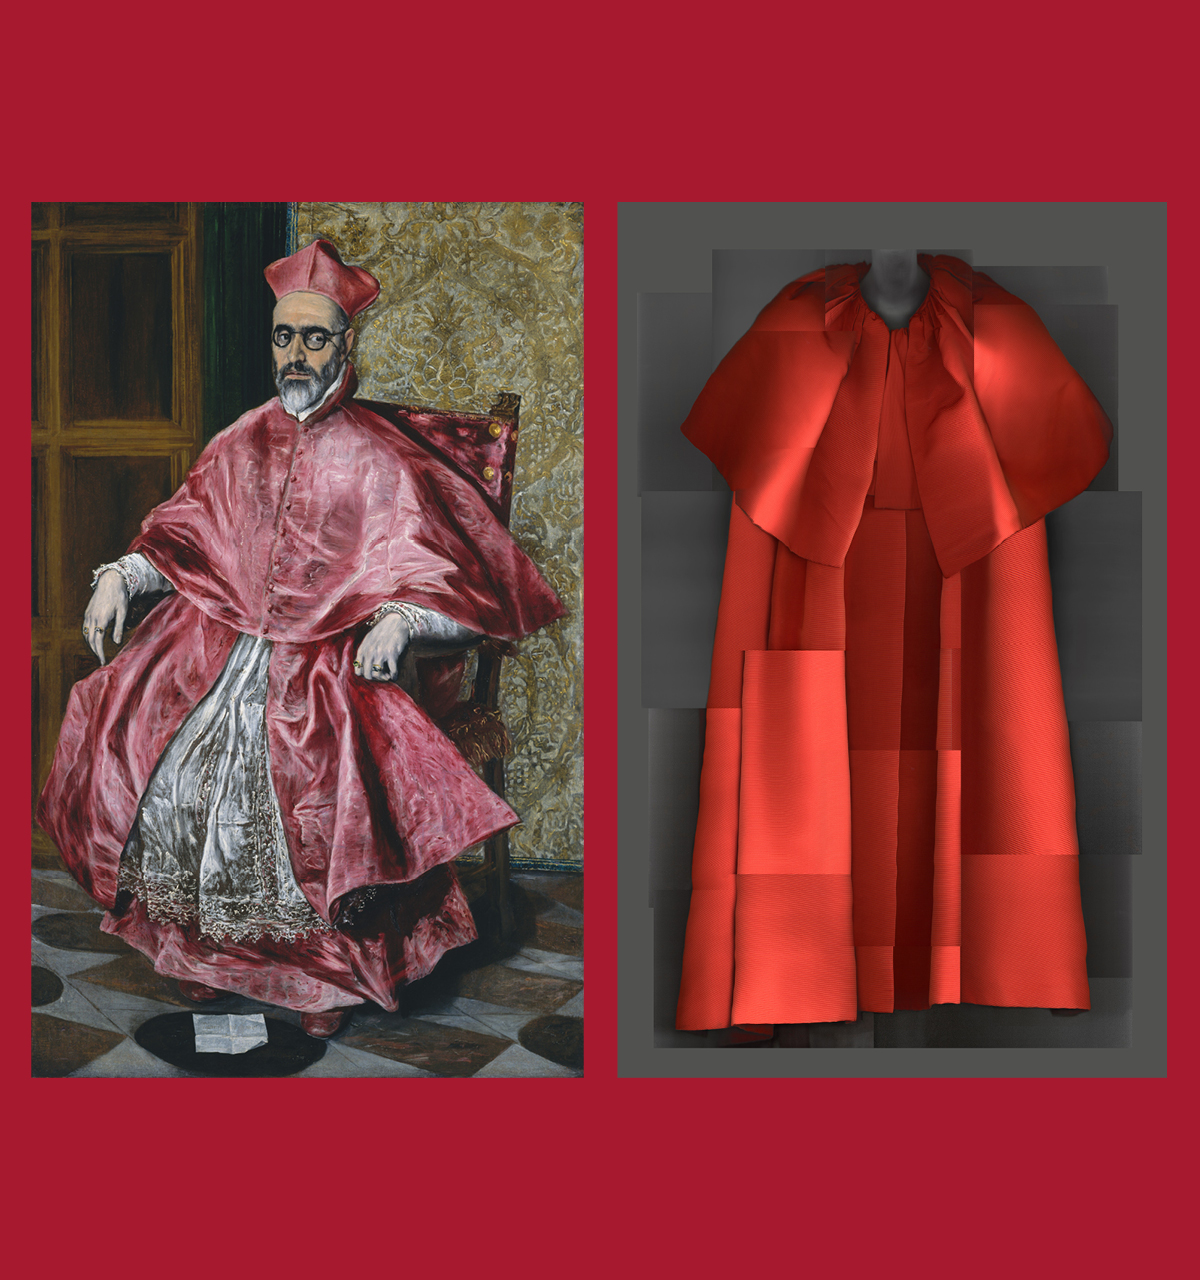 Heavenly Bodies: Fashion and the Catholic Imagination | The Metropolitan Museum of Art